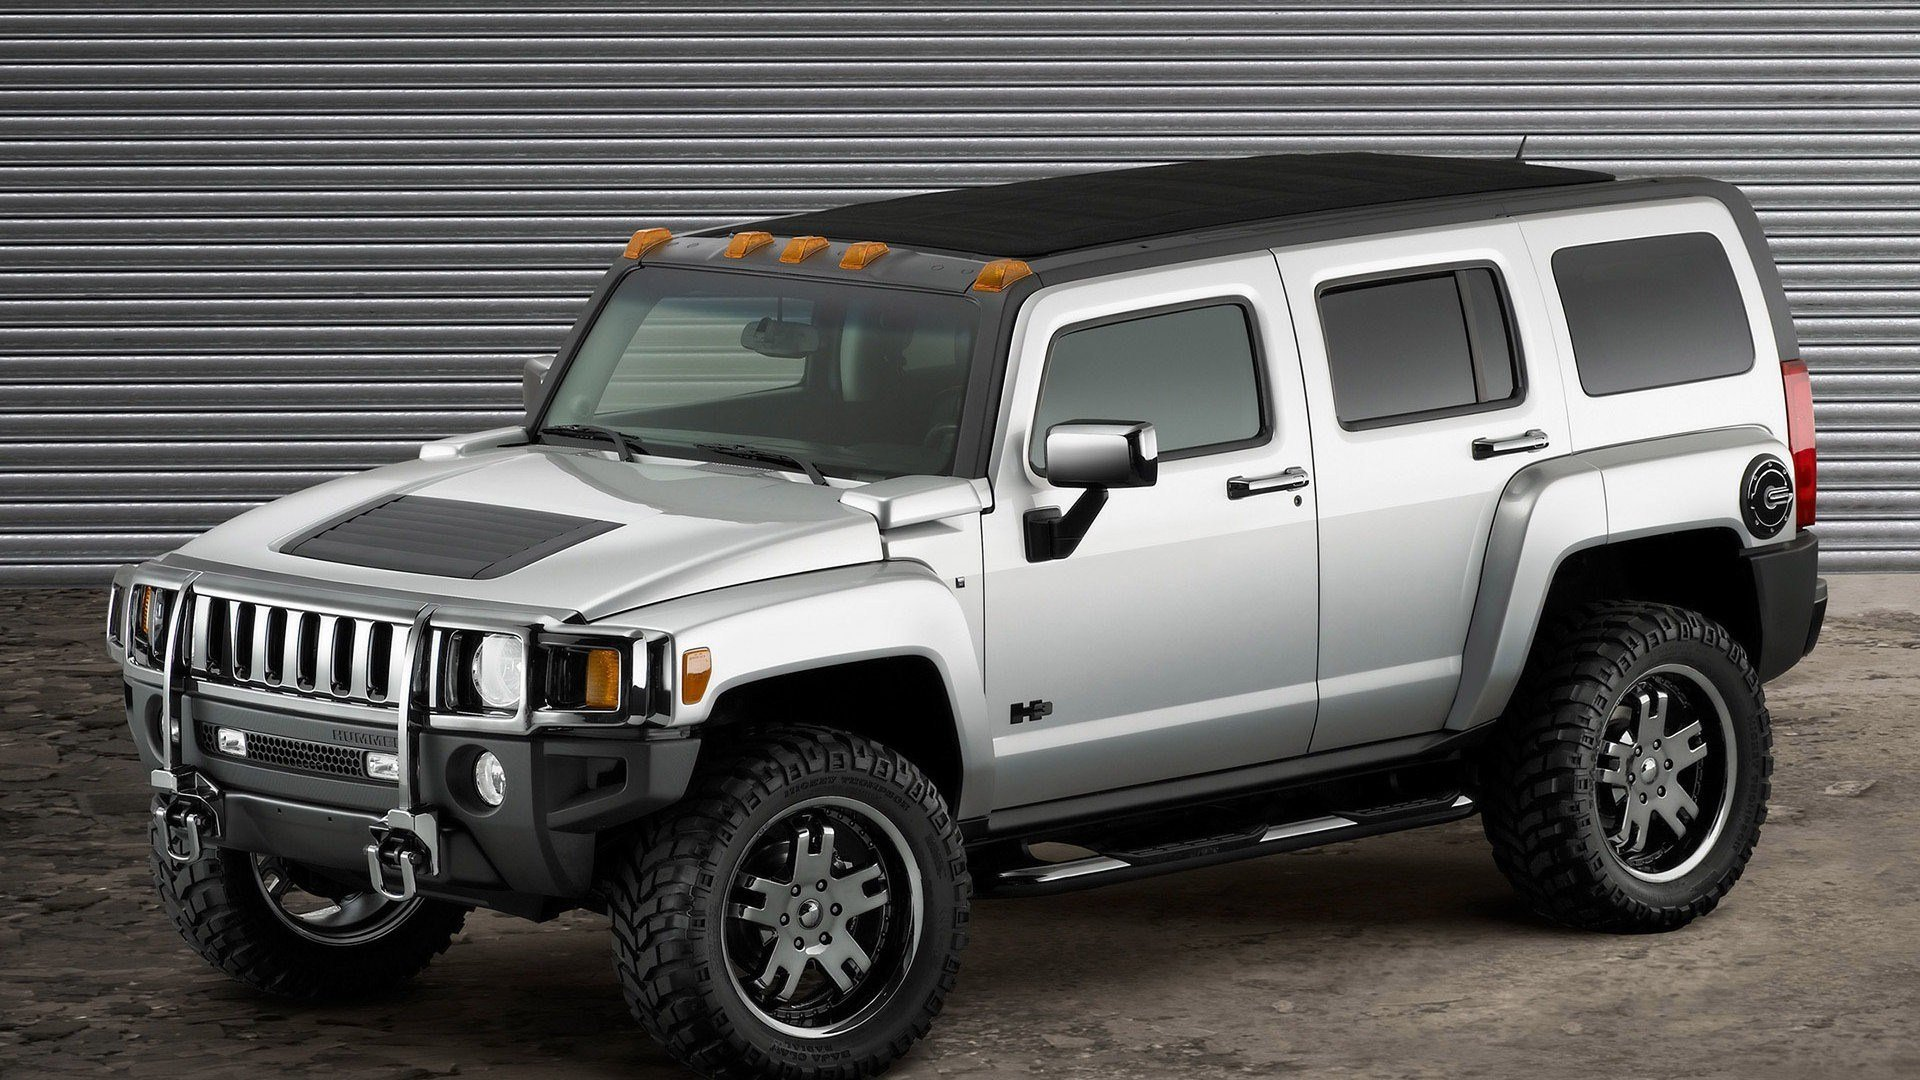 New Hummer Car Wallpapers Hd Wallpapers On This Month